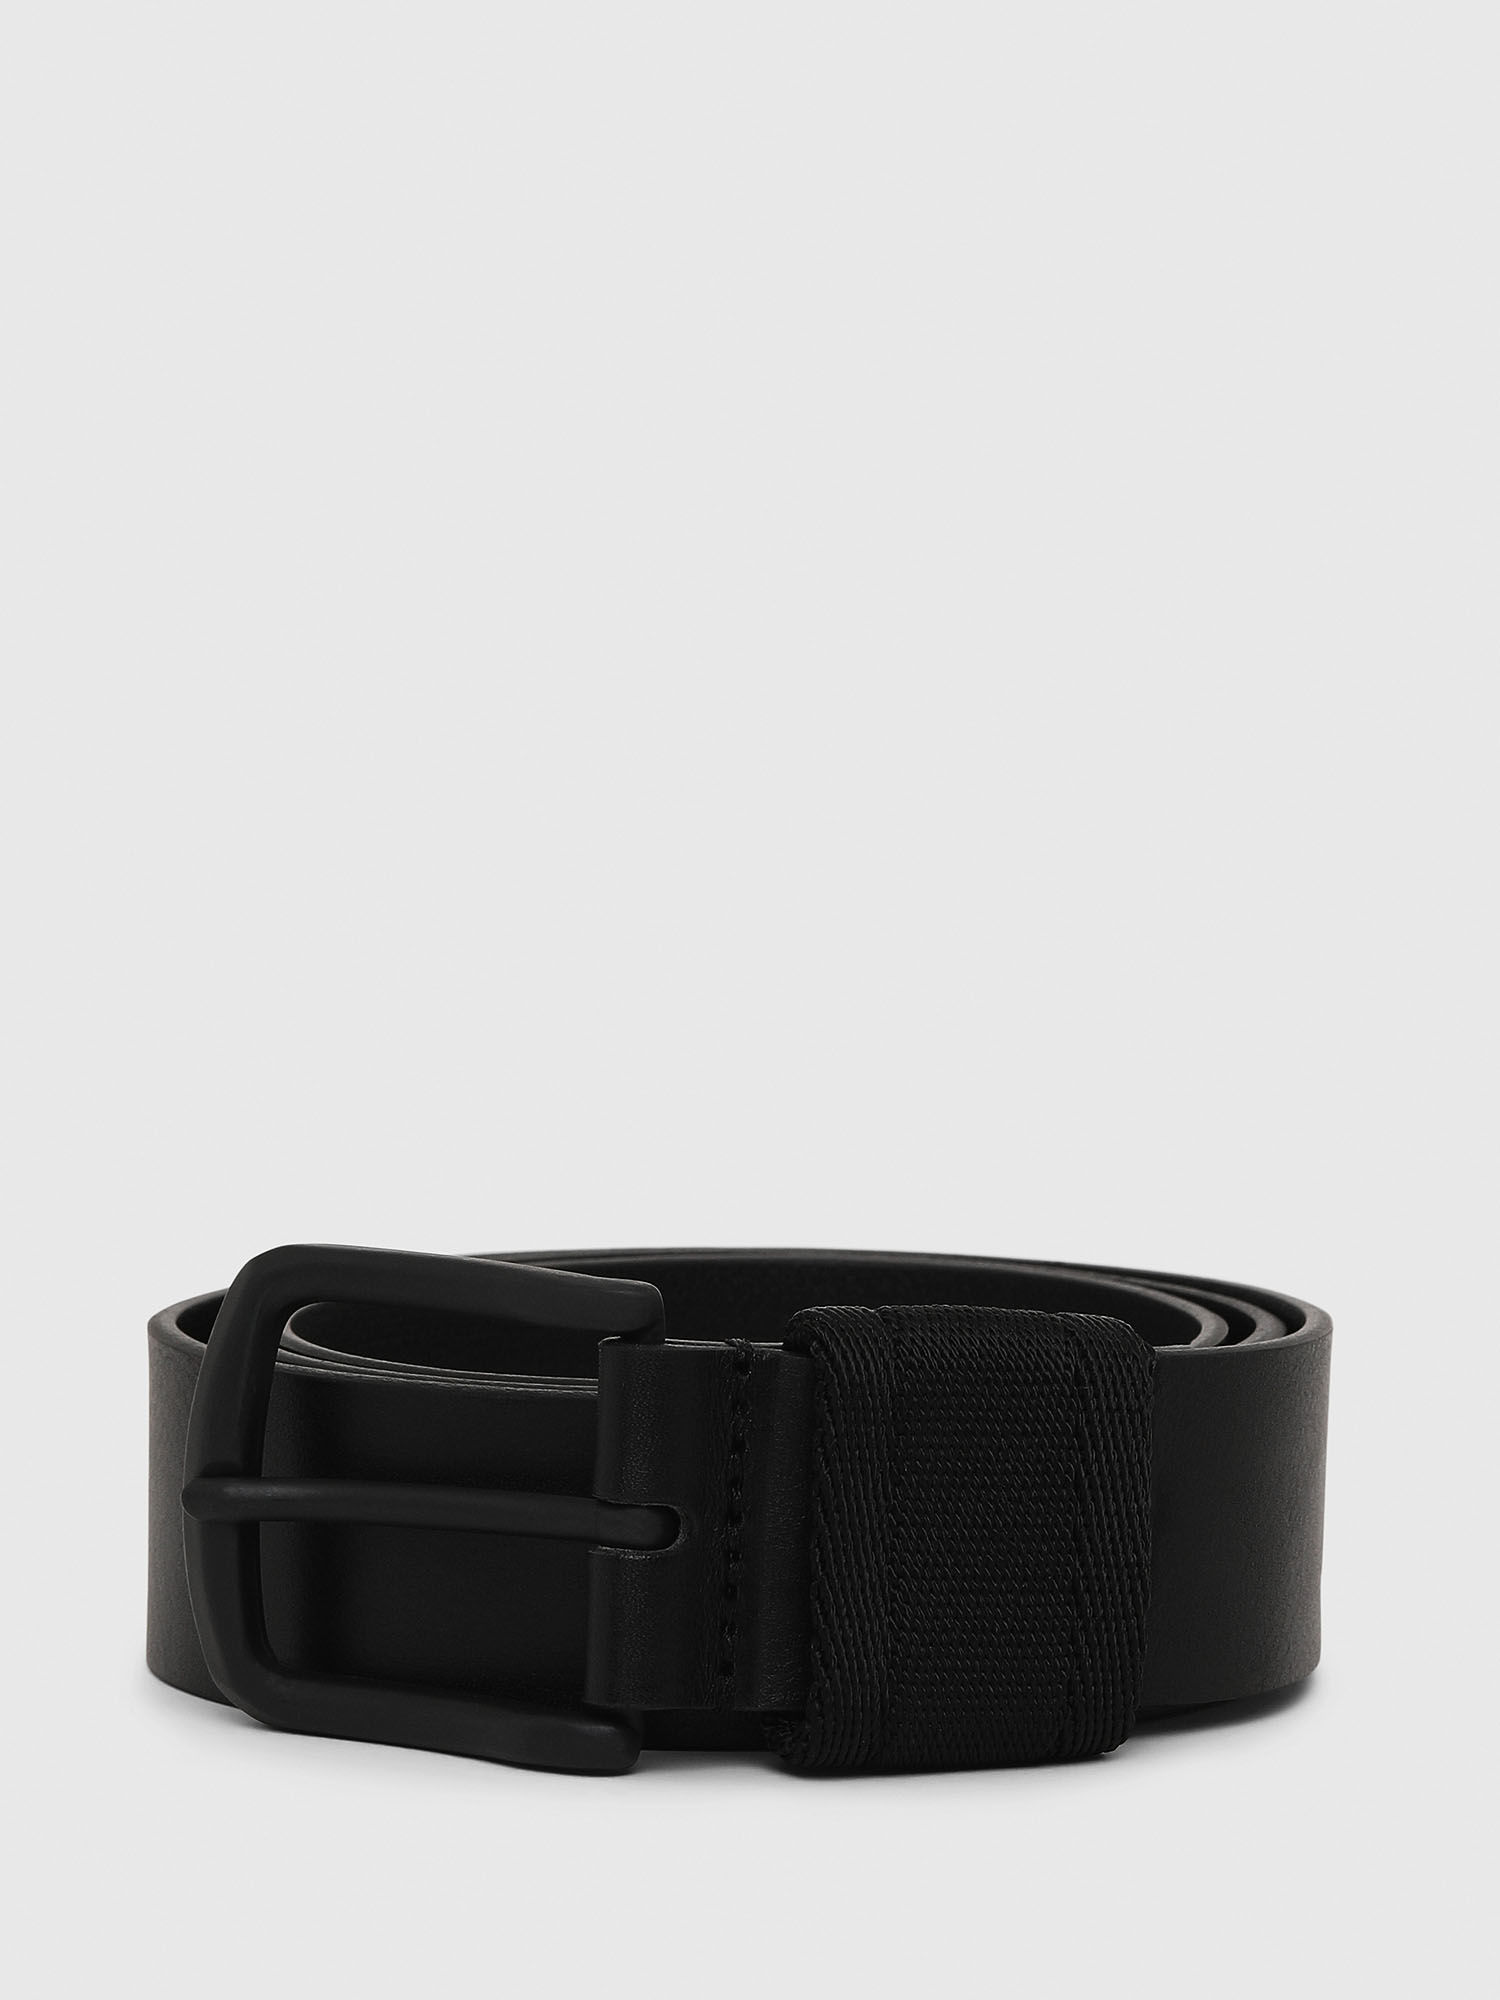 Mens Belts: leather, denim | Diesel Online Store